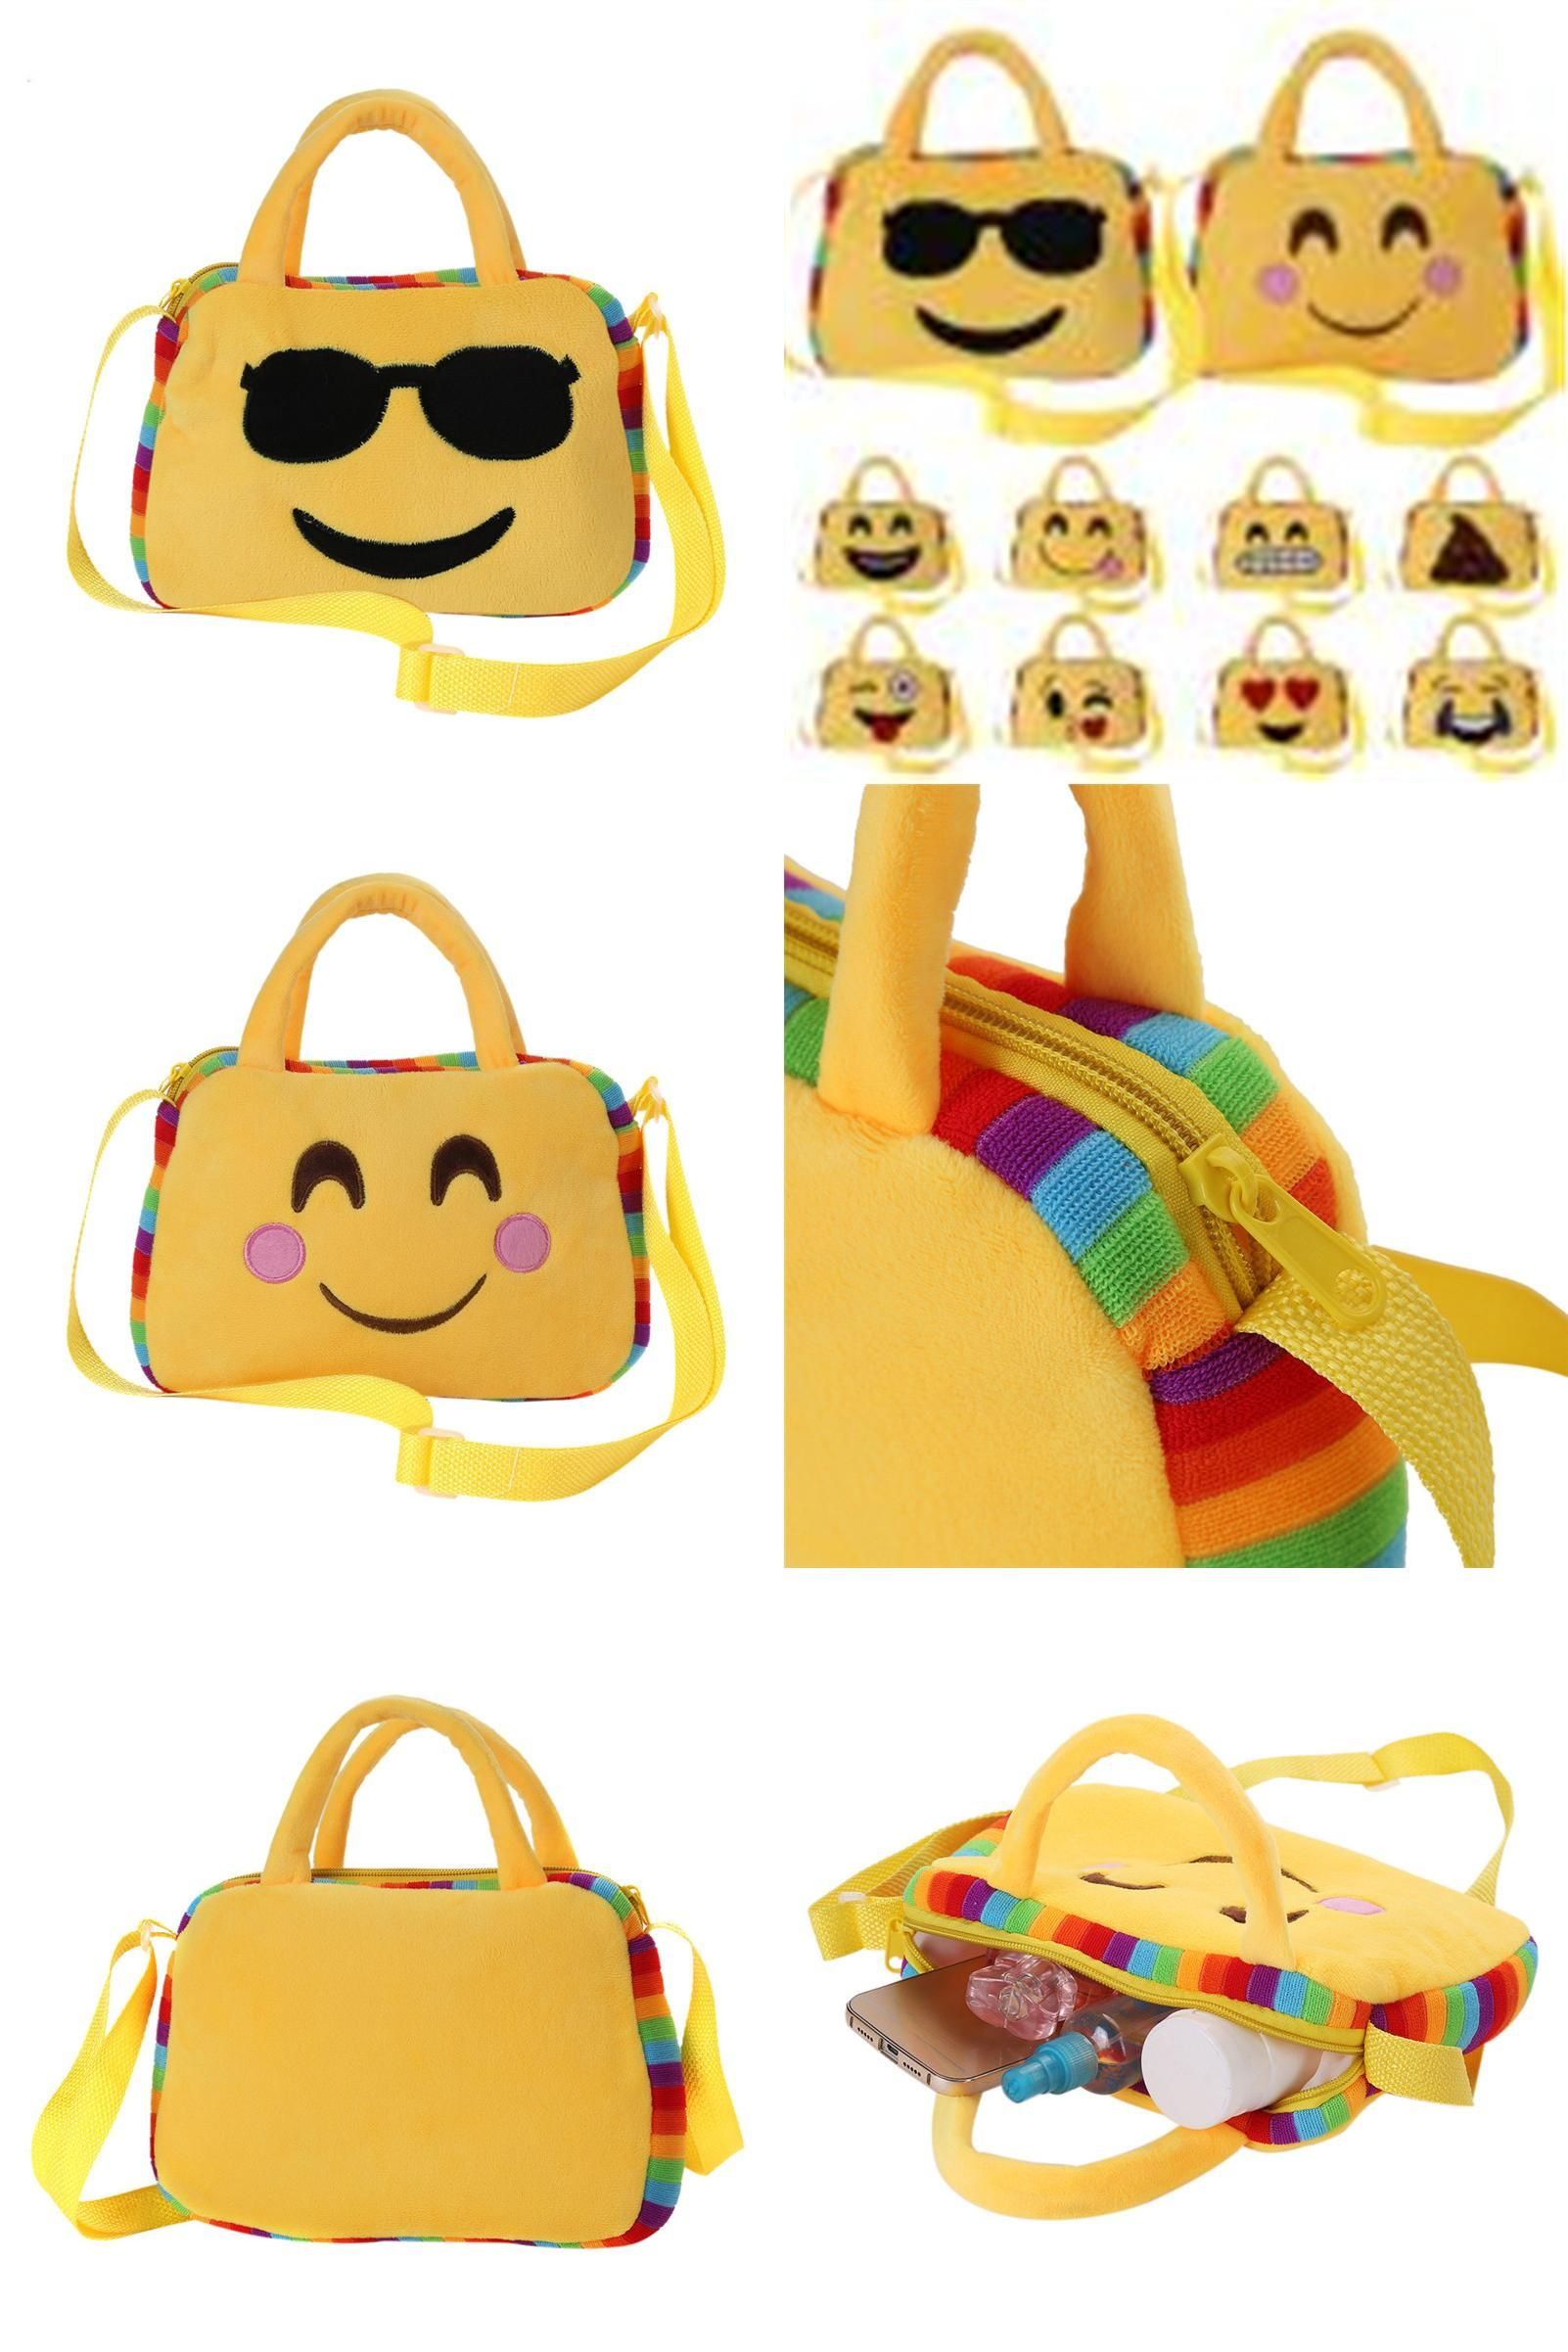 Pin By Kimberly Graham On All Things Emoji Emoticons Smiley Faces Emoji Bag Pink Tote Bags Pink Tote